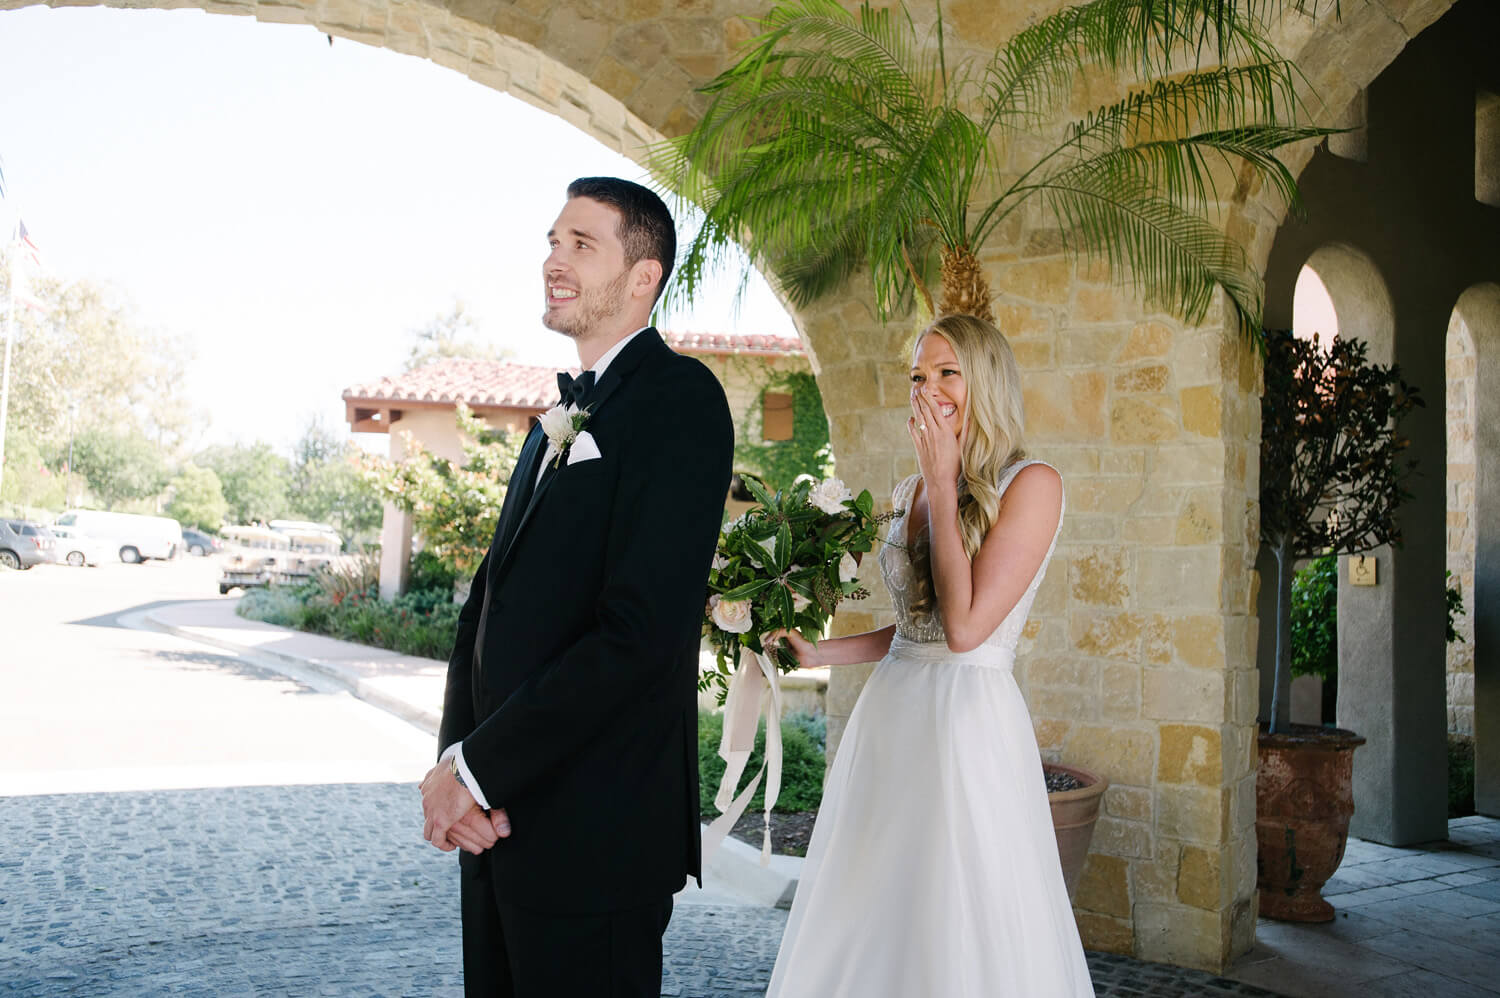 bride cries as she approaches groom during first look